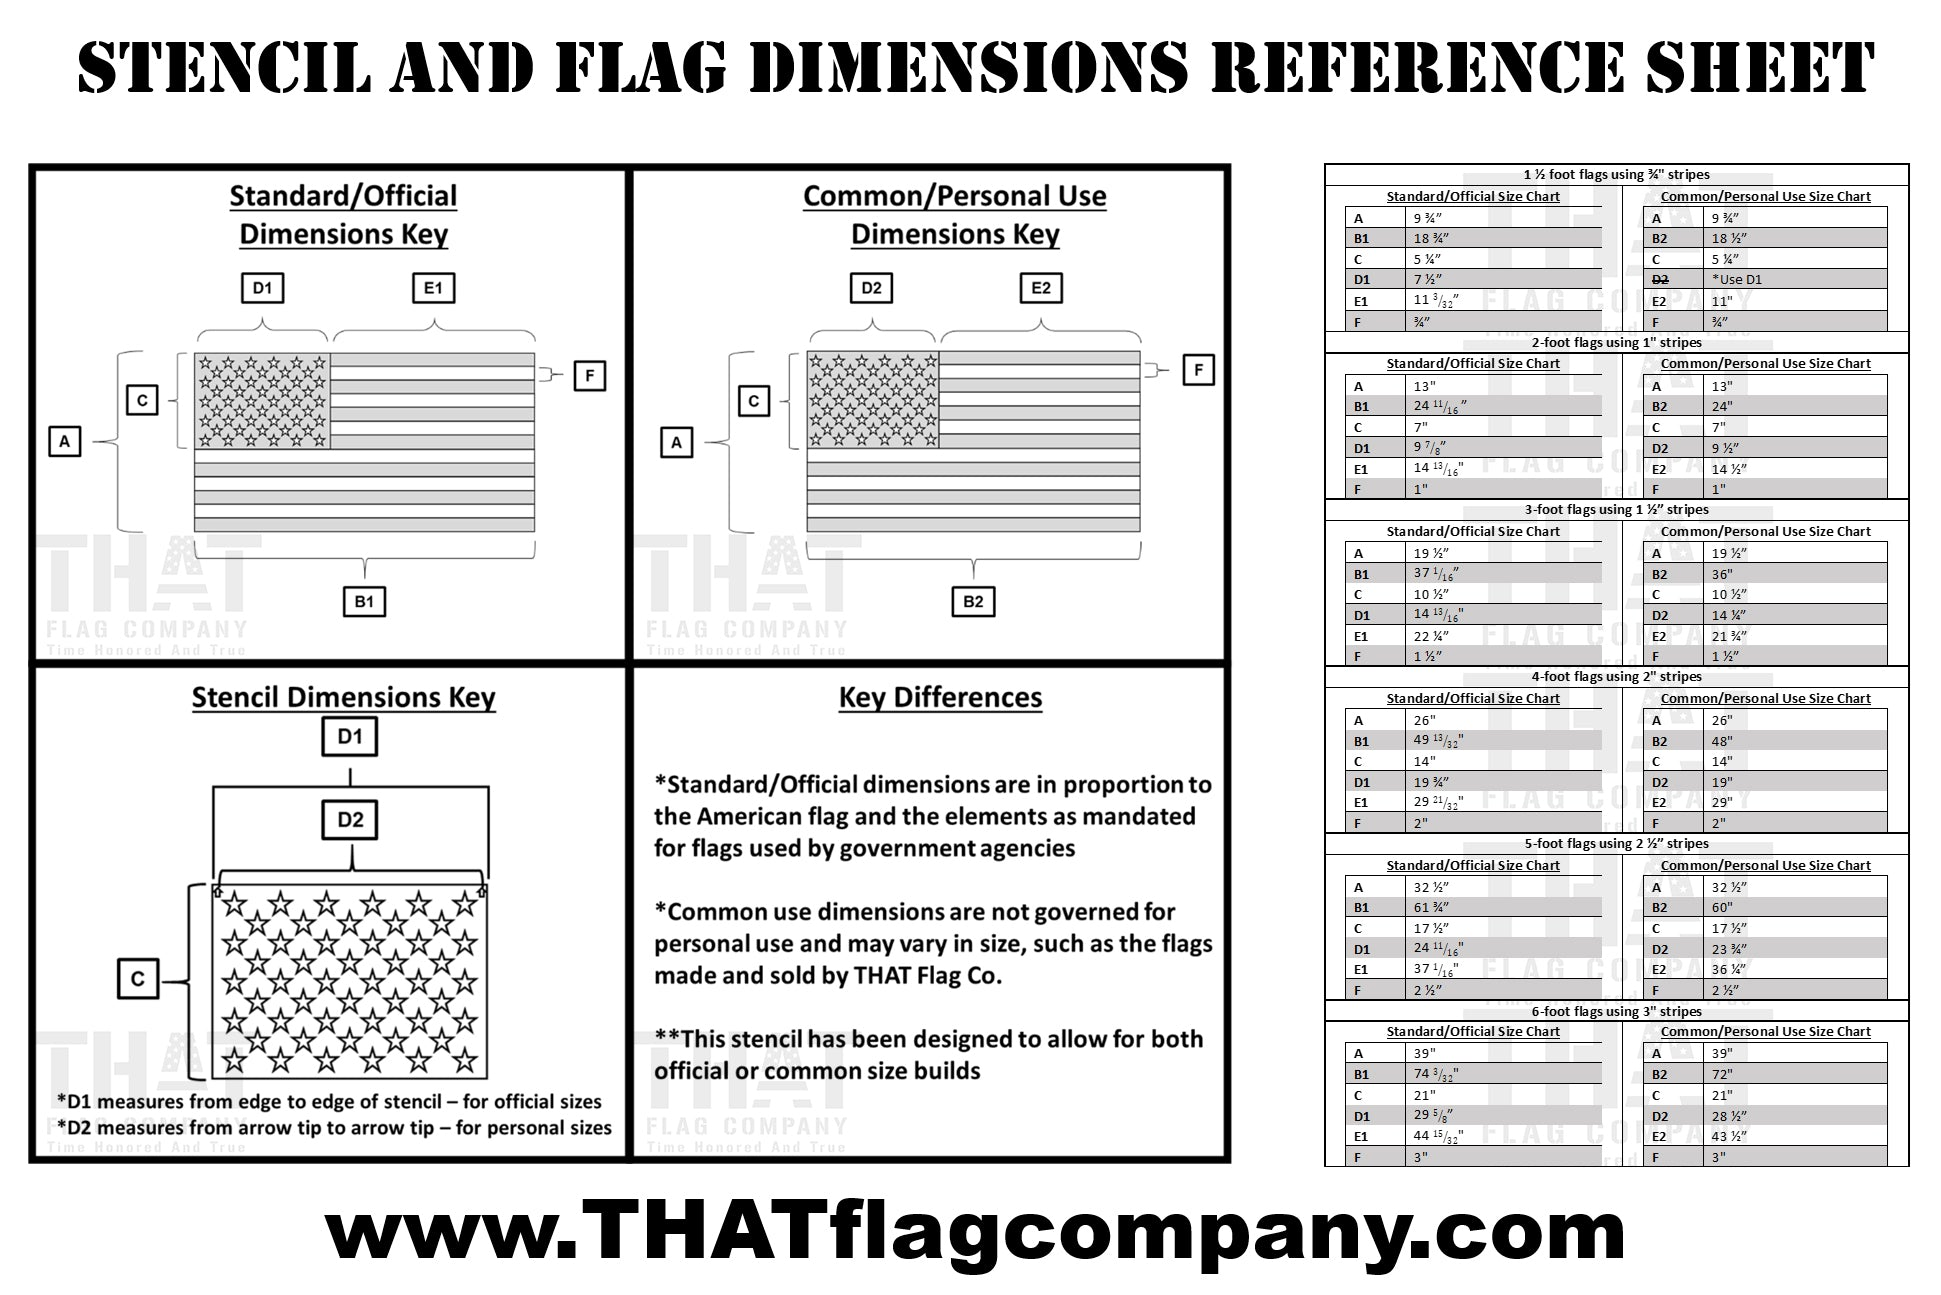 Stencil Reference Sheet